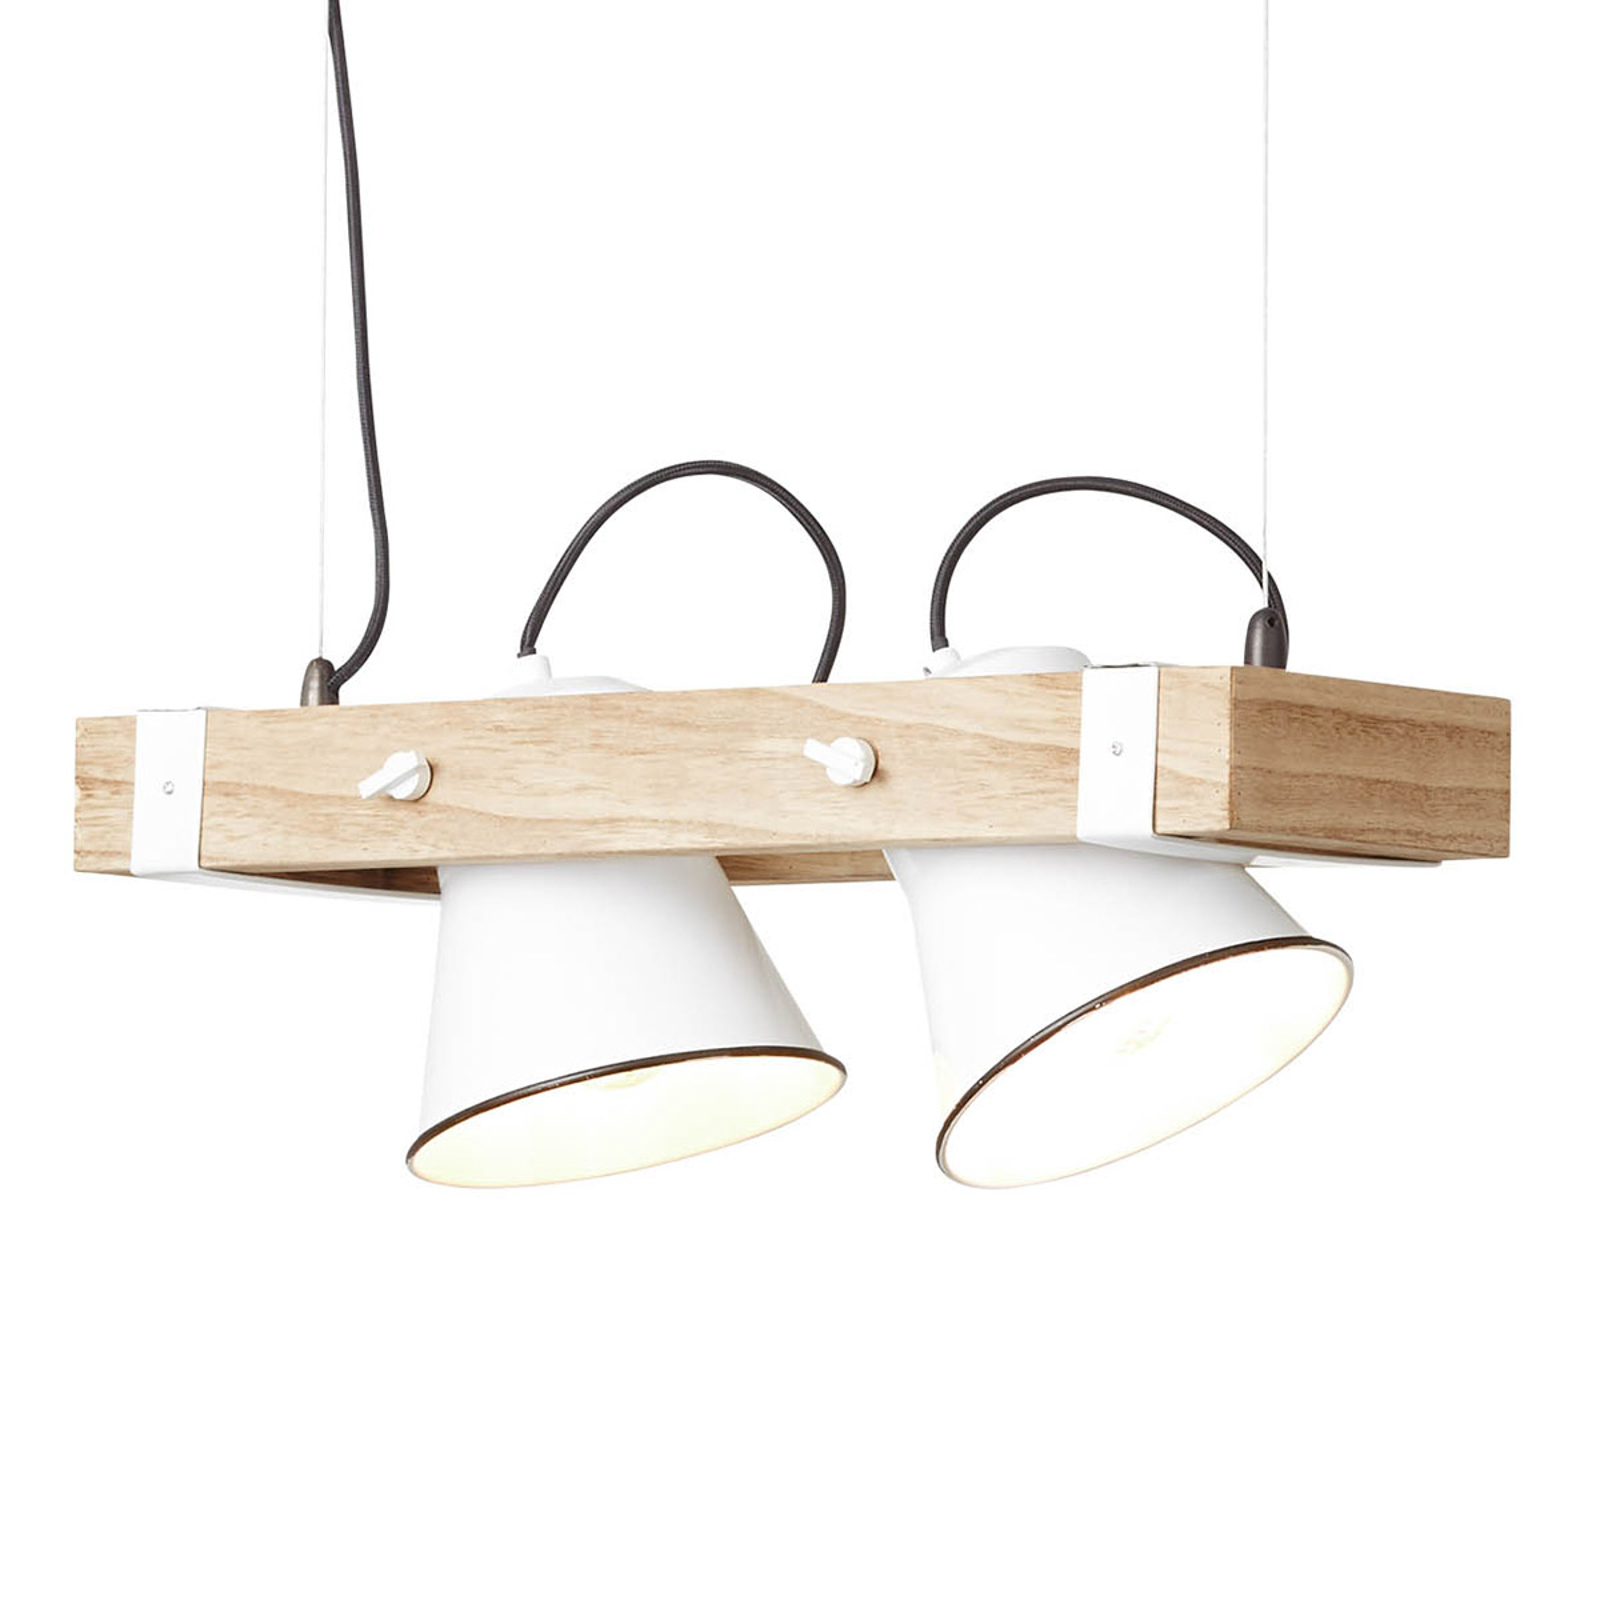 Hanglamp Plow 2-lamps., wit hout licht